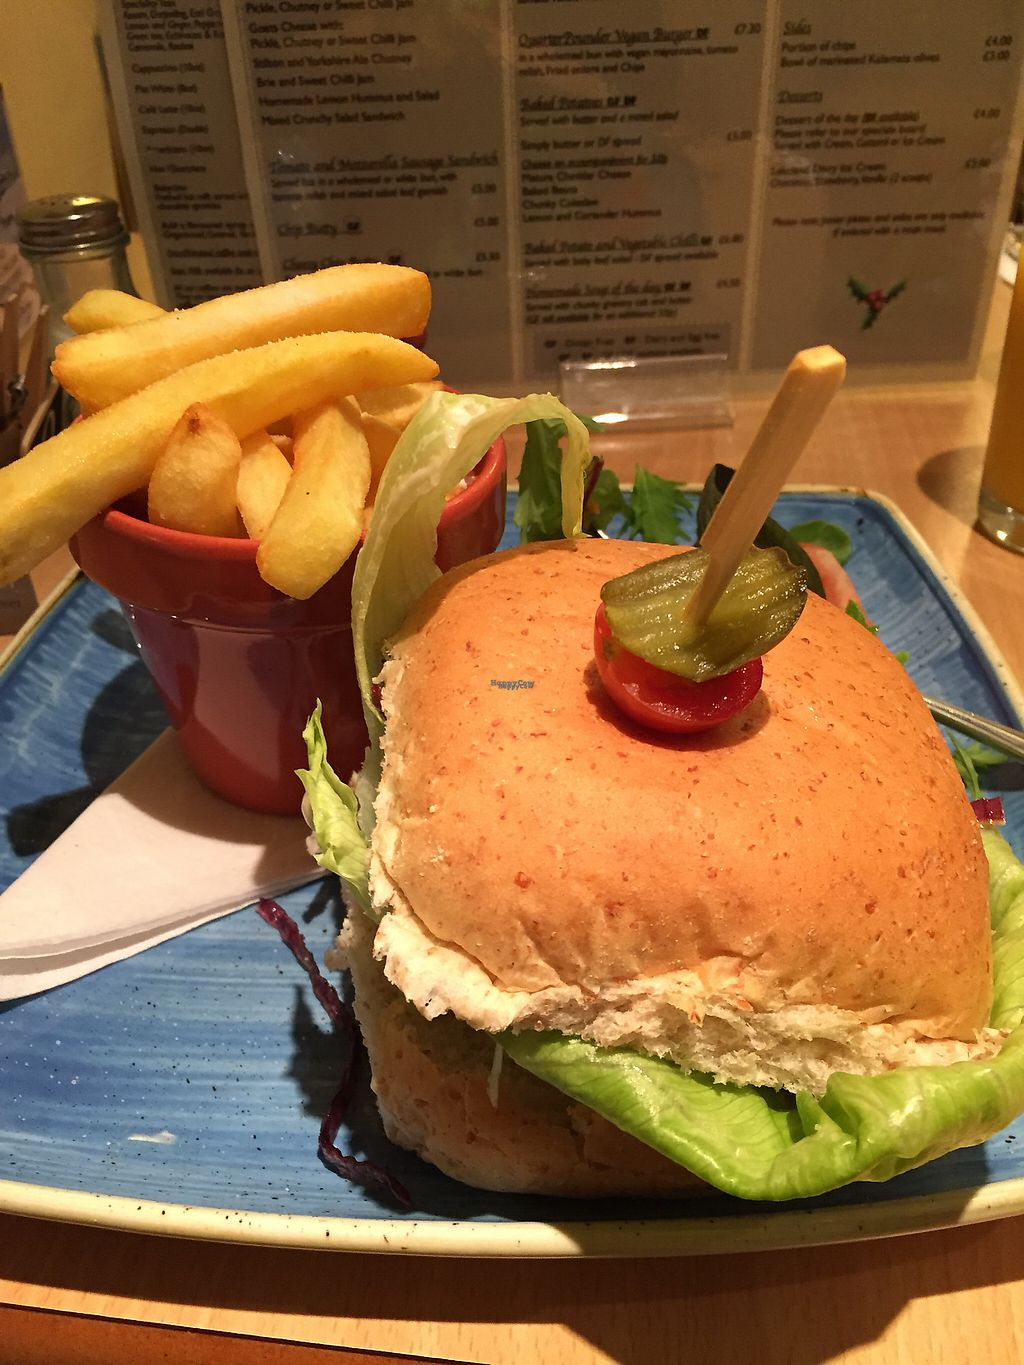 "Photo of The Retreat Cafe and Tea Rooms  by <a href=""/members/profile/SarahRichardson"">SarahRichardson</a> <br/>vegan burger chips & salad <br/> December 5, 2016  - <a href='/contact/abuse/image/8495/197568'>Report</a>"